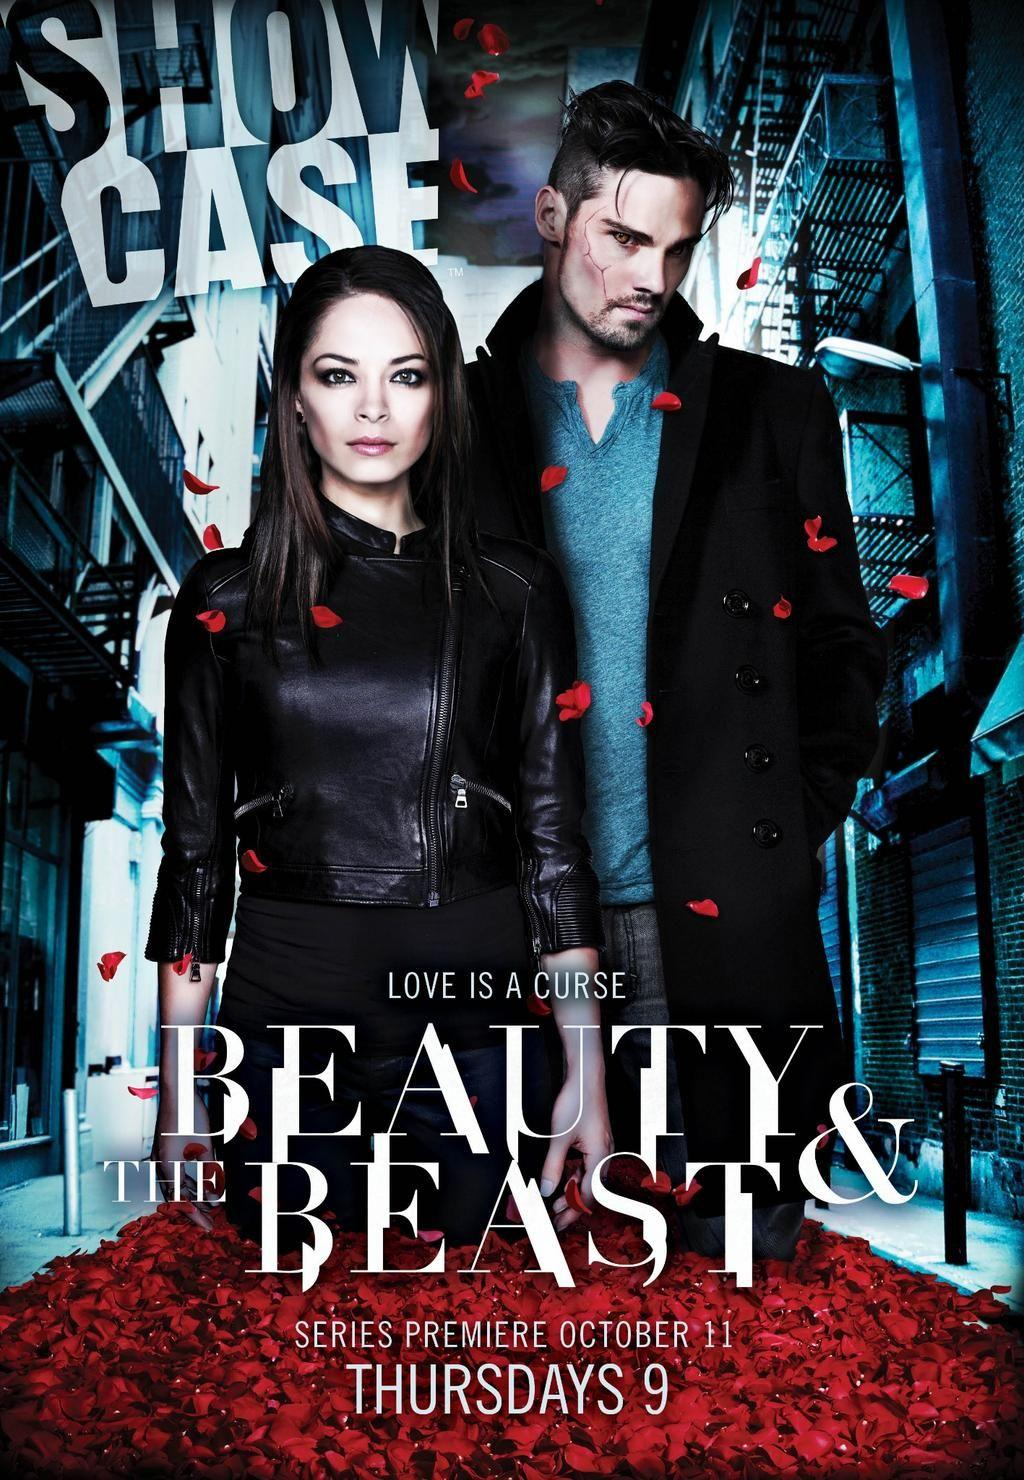 http://1.bp.blogspot.com/-xap-OA8oorw/UHjoZZ-lB0I/AAAAAAAAMr0/6-4wlxet2b0/s1600/beauty-and-the-beast-season-1-official-poster-10outubro2012-01.jpg